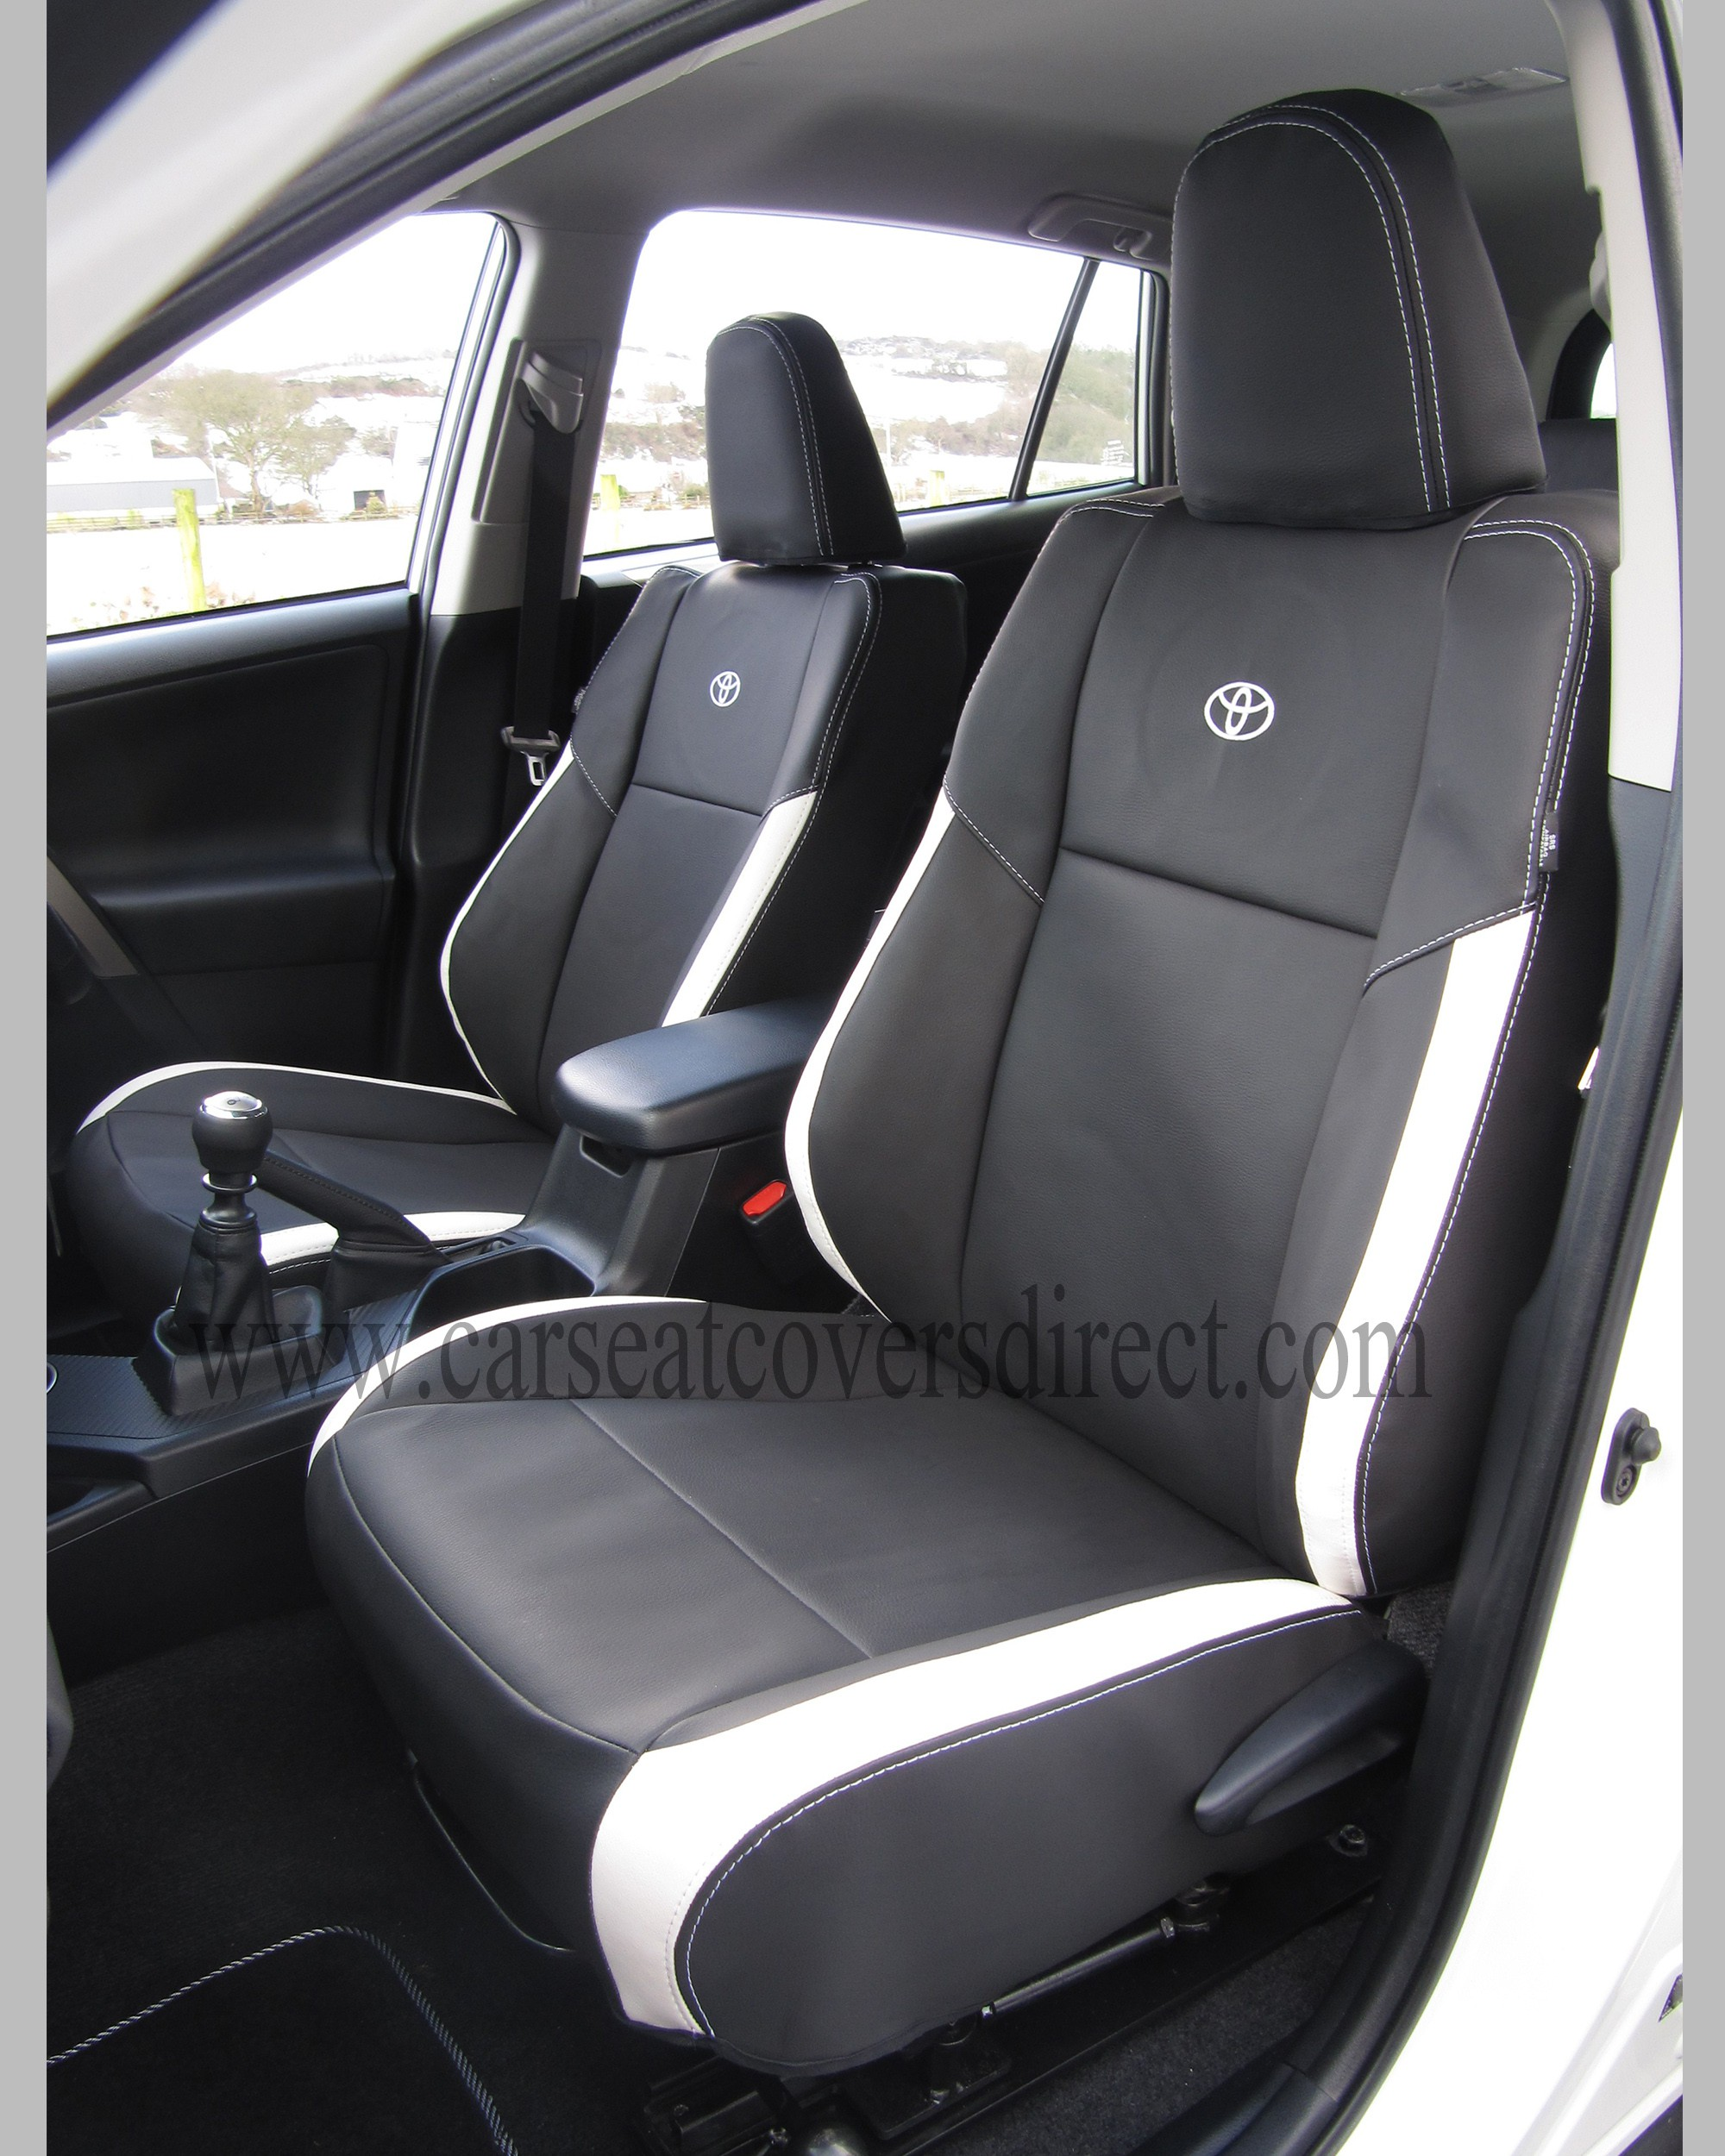 Toyota Seat Covers >> Toyota Rav4 Seat Covers Black White Leatherette 4th Generations